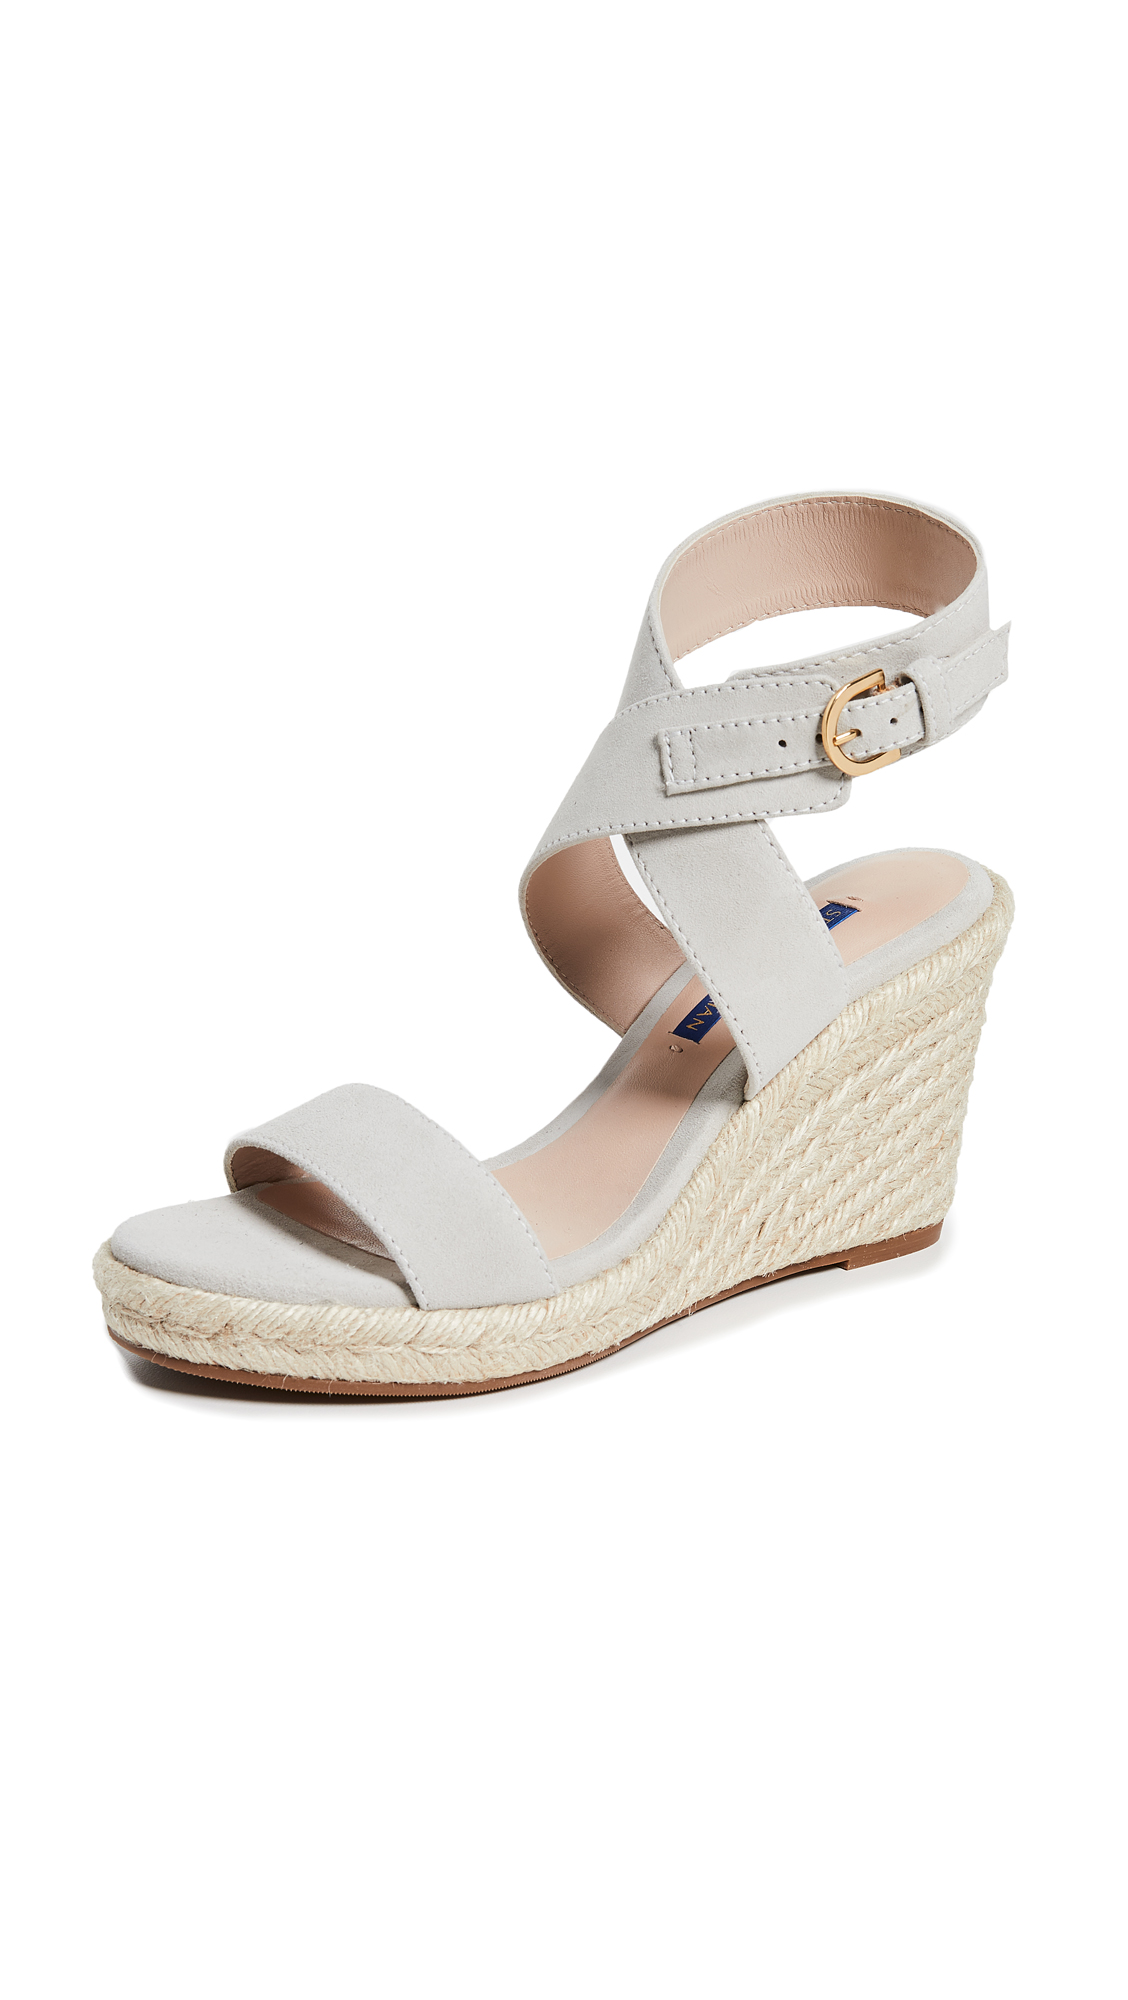 Stuart Weitzman Lexia Wedge Sandals - Seal